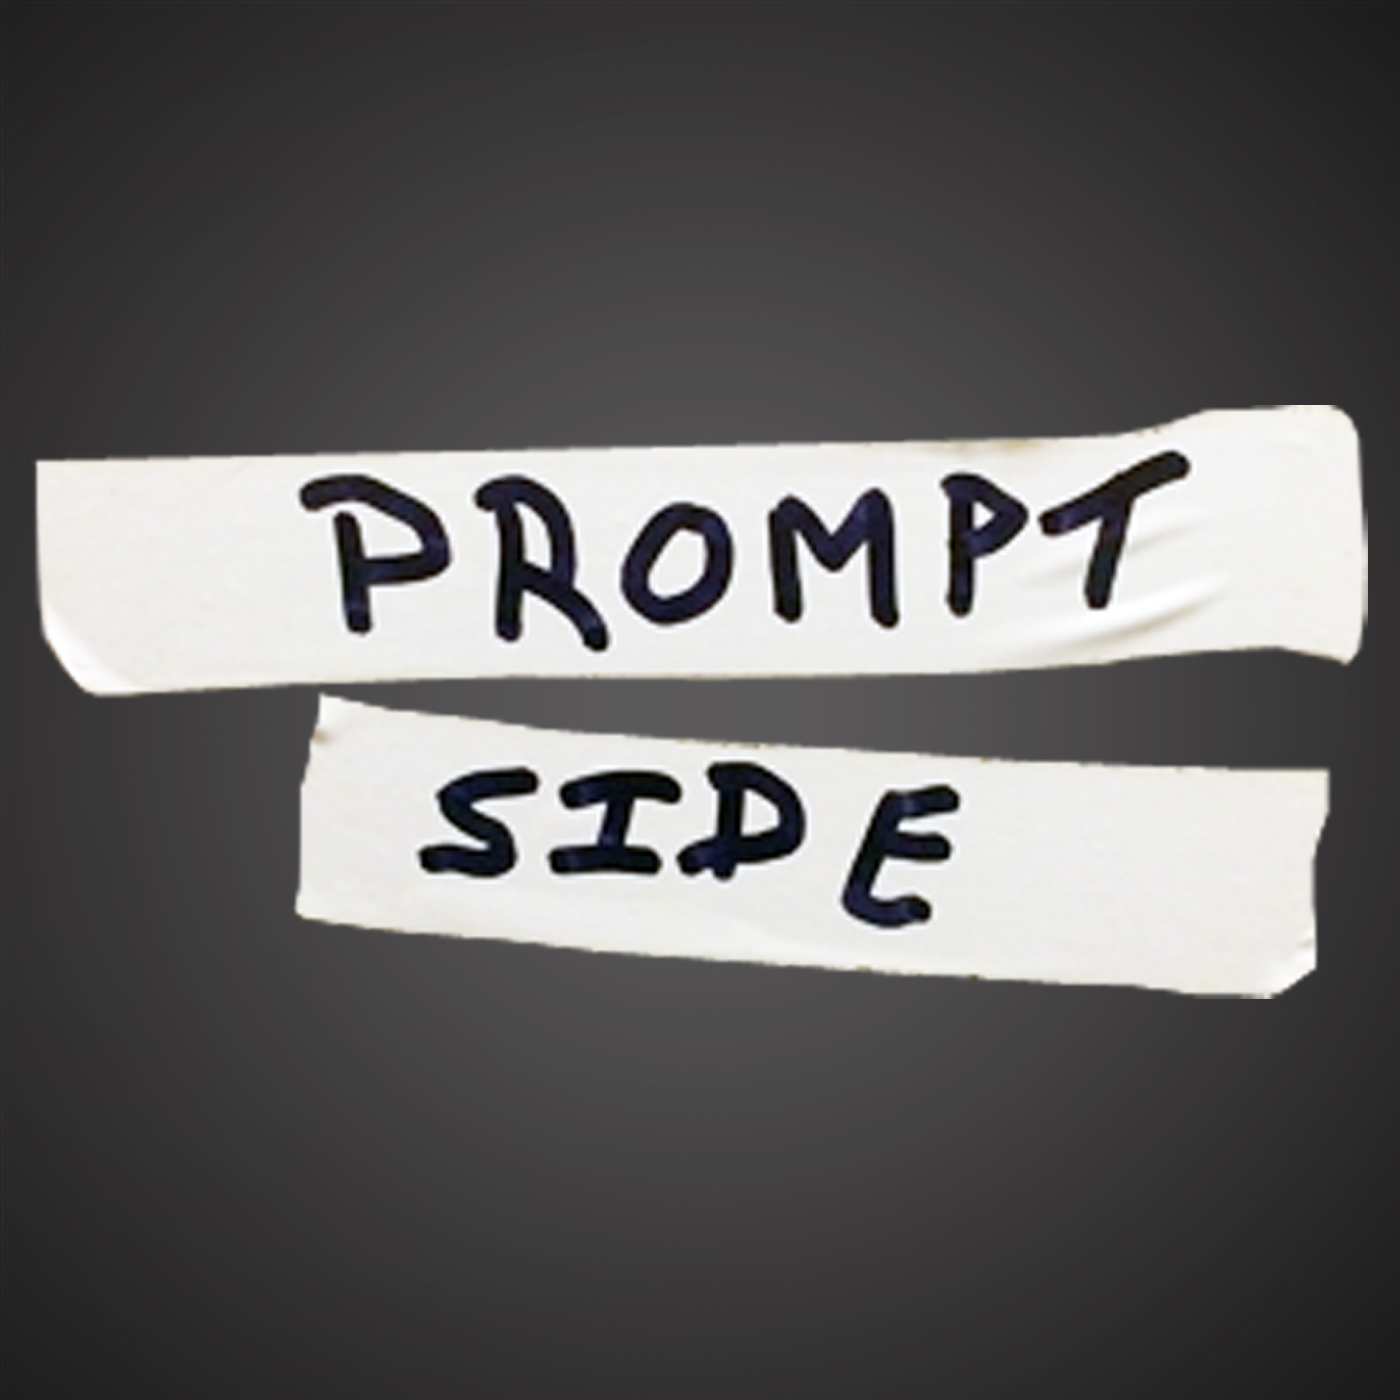 Prompt Side Podcast